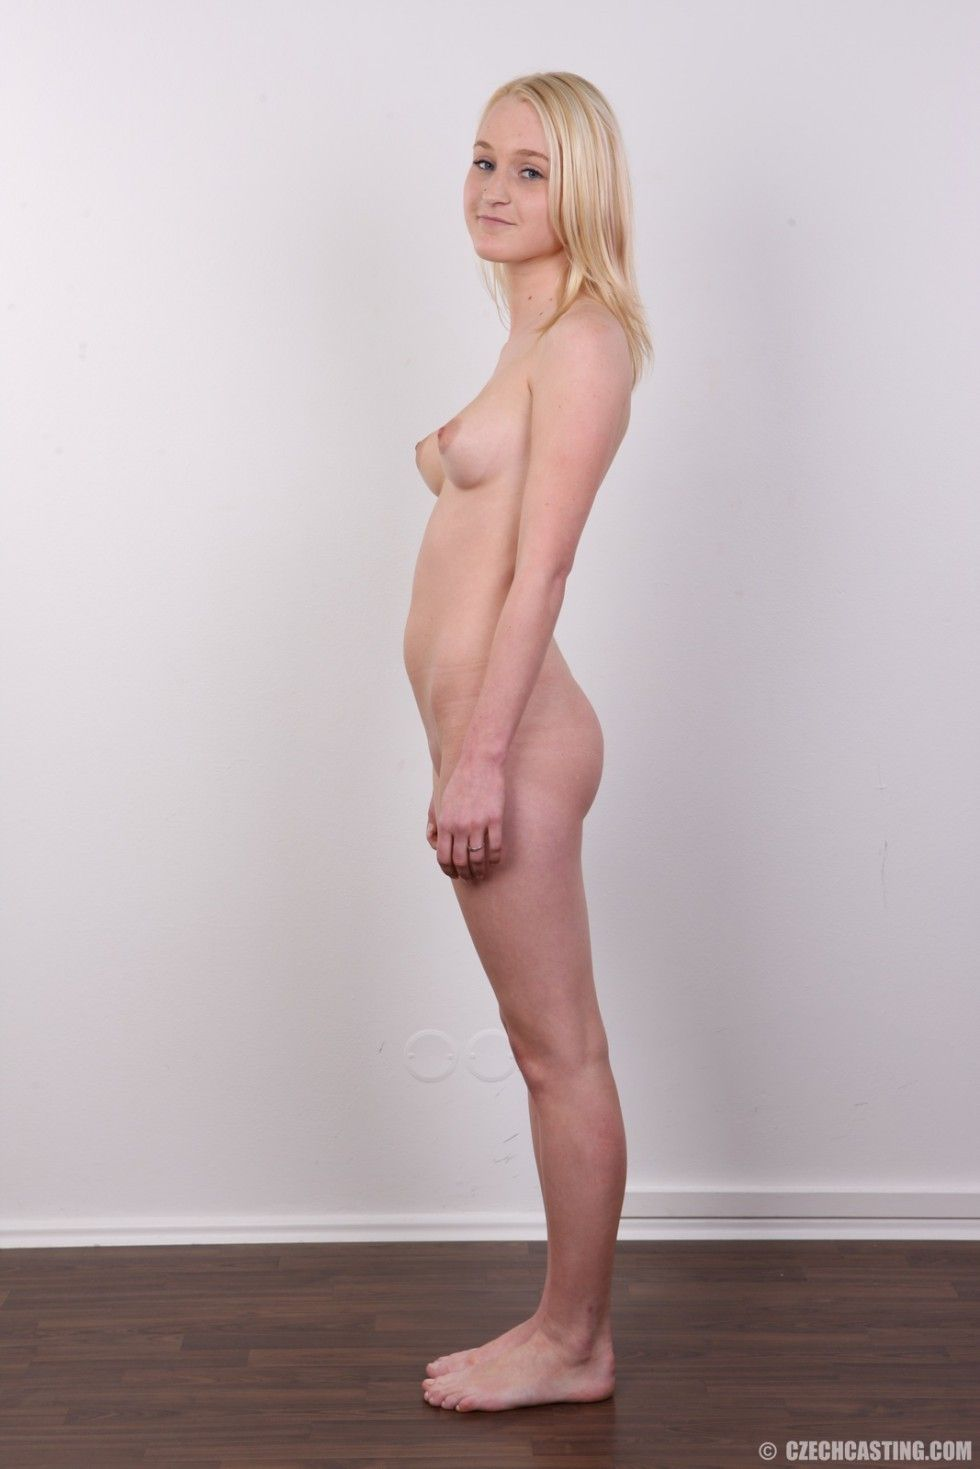 Diminutive blond youthful positions unclothed